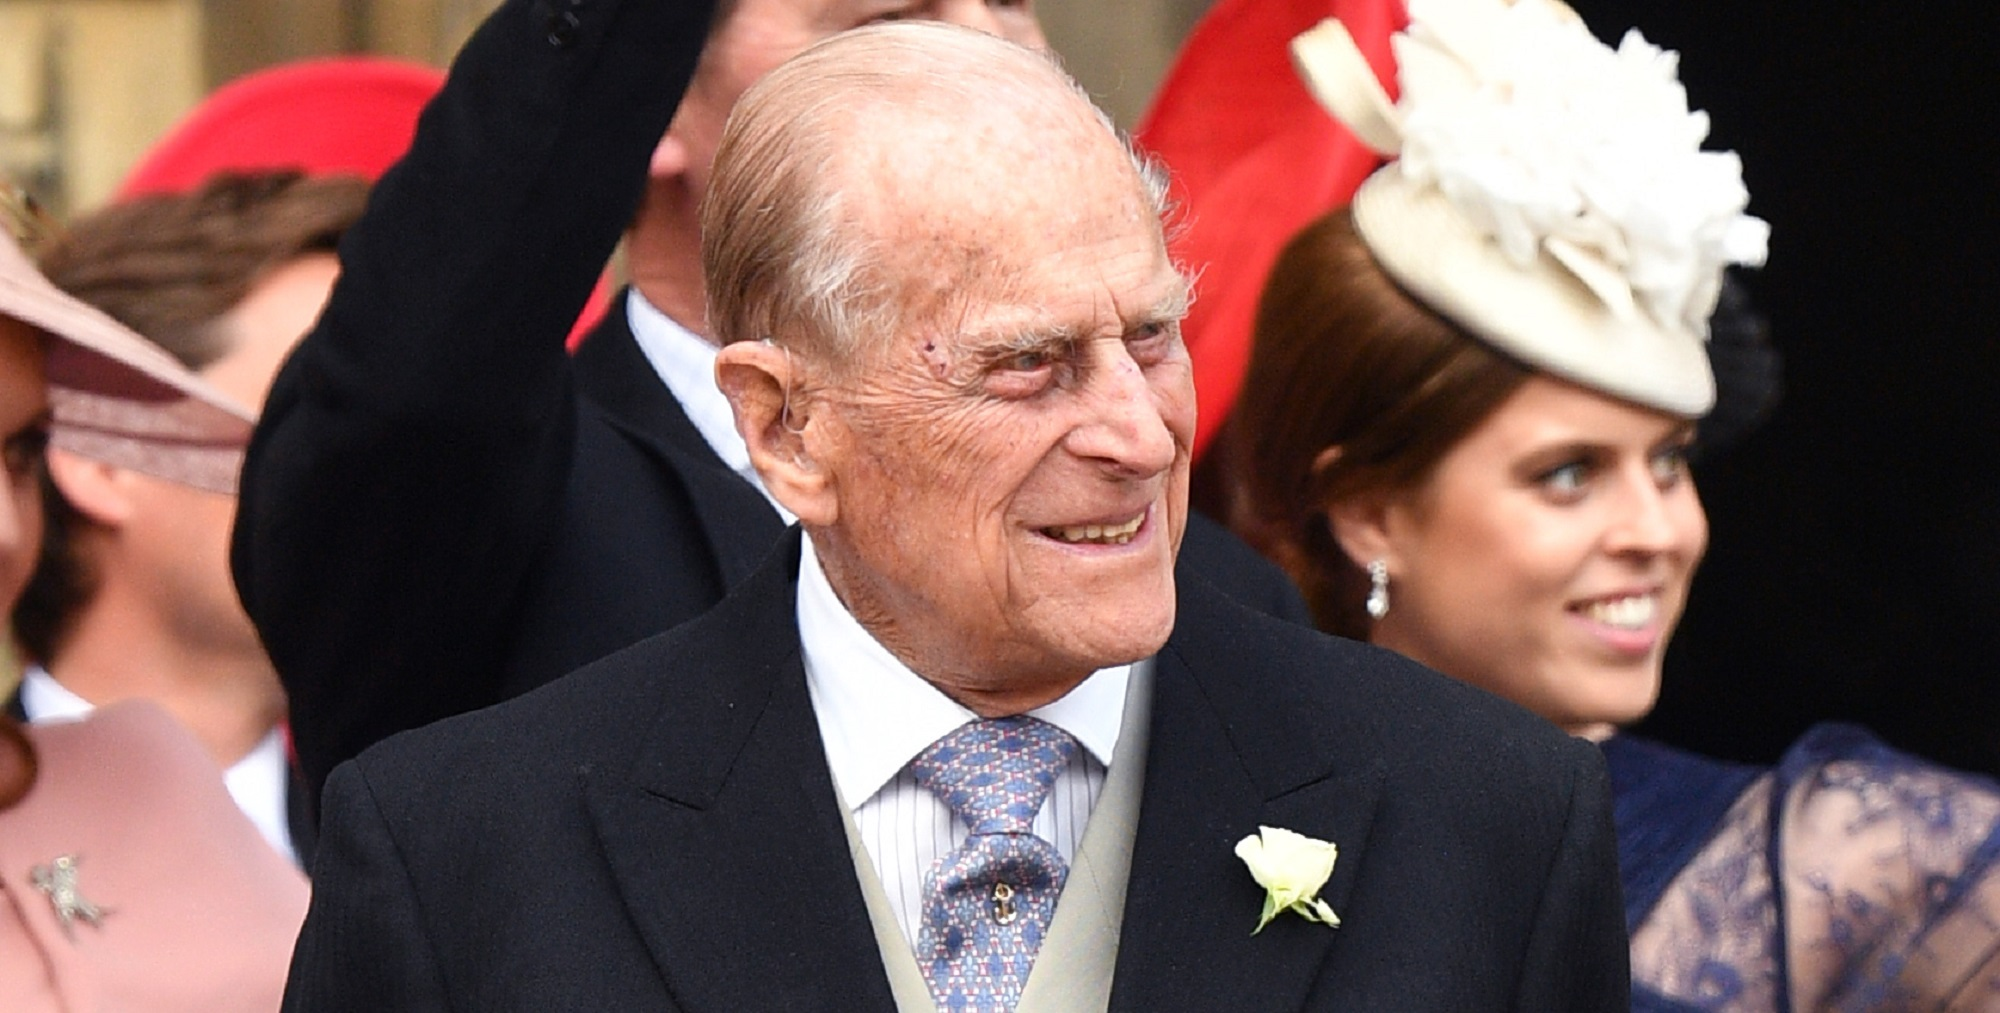 Prince Philip issues statement on coronavirus pandemic from Windsor Castle